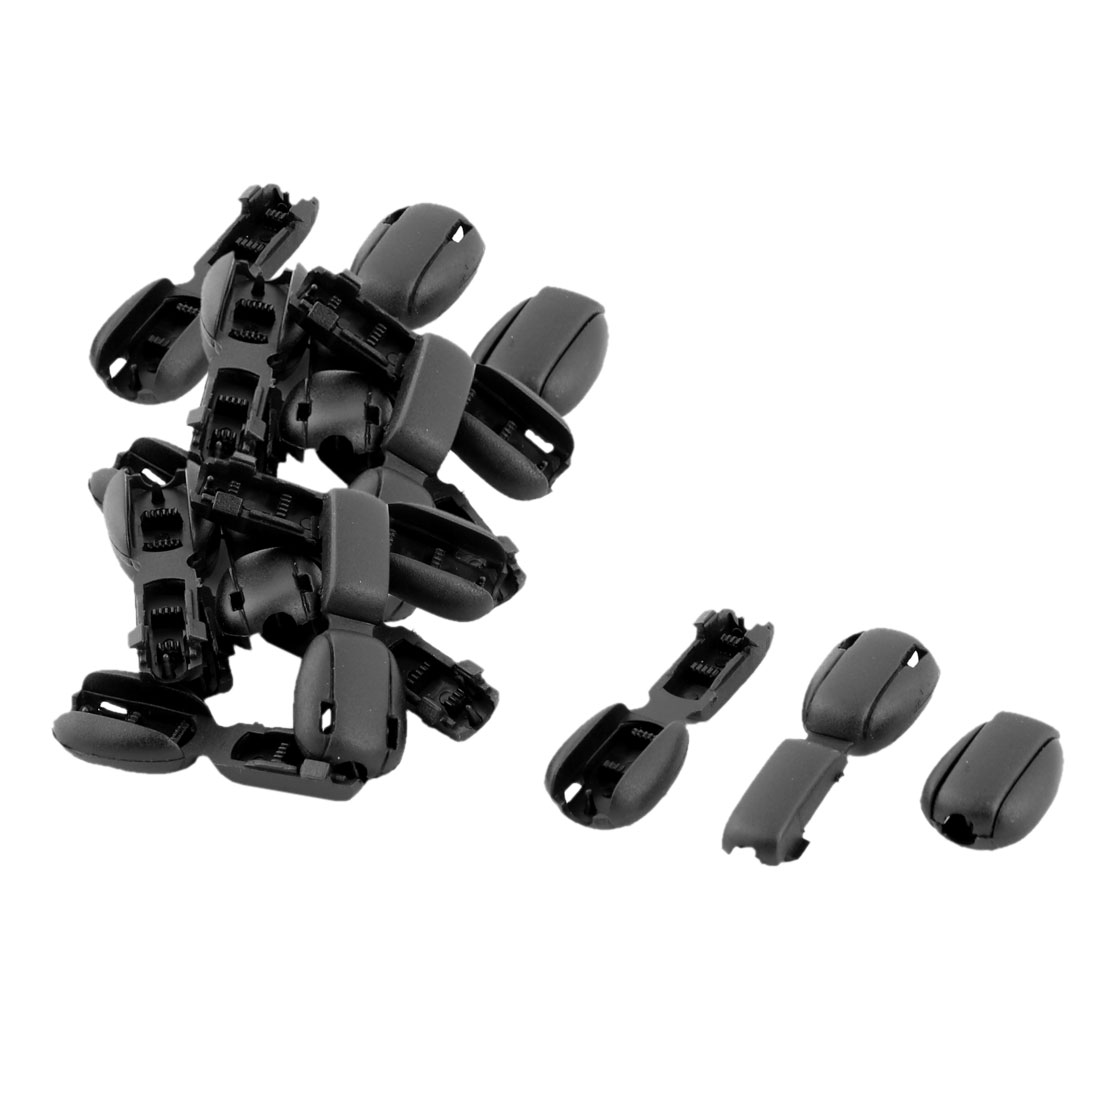 Plastic Single Hole Clothes Sliding Glide Cord Rope Lock Stopper Fastener Buckle 20pcs